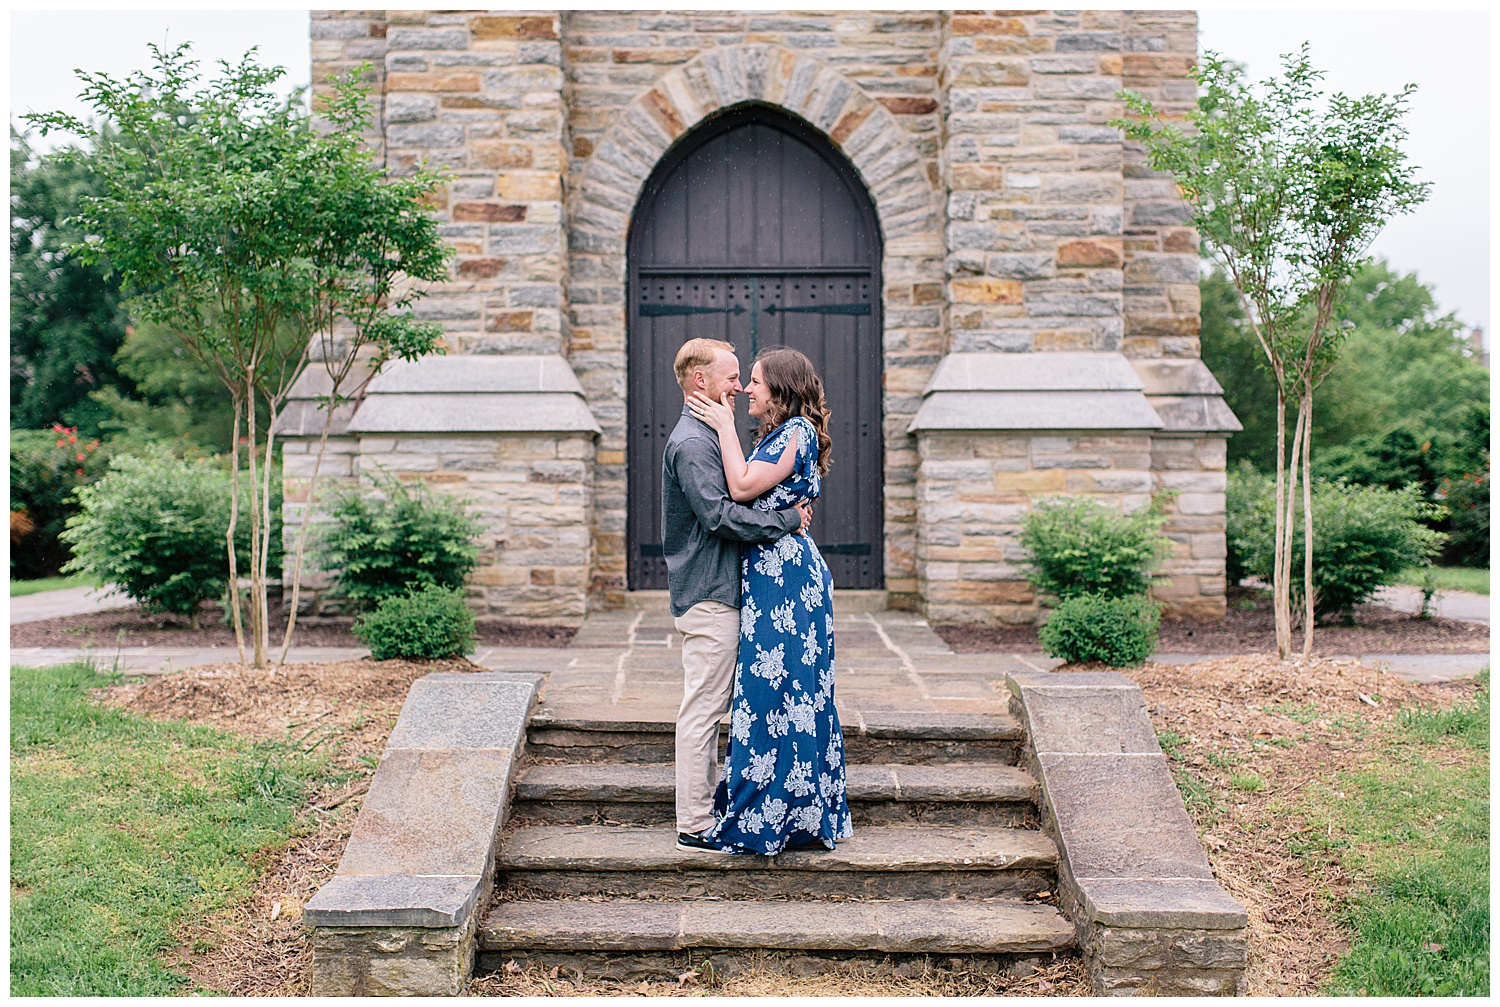 emily-belson-photography-frederick-md-engagement-02.jpg